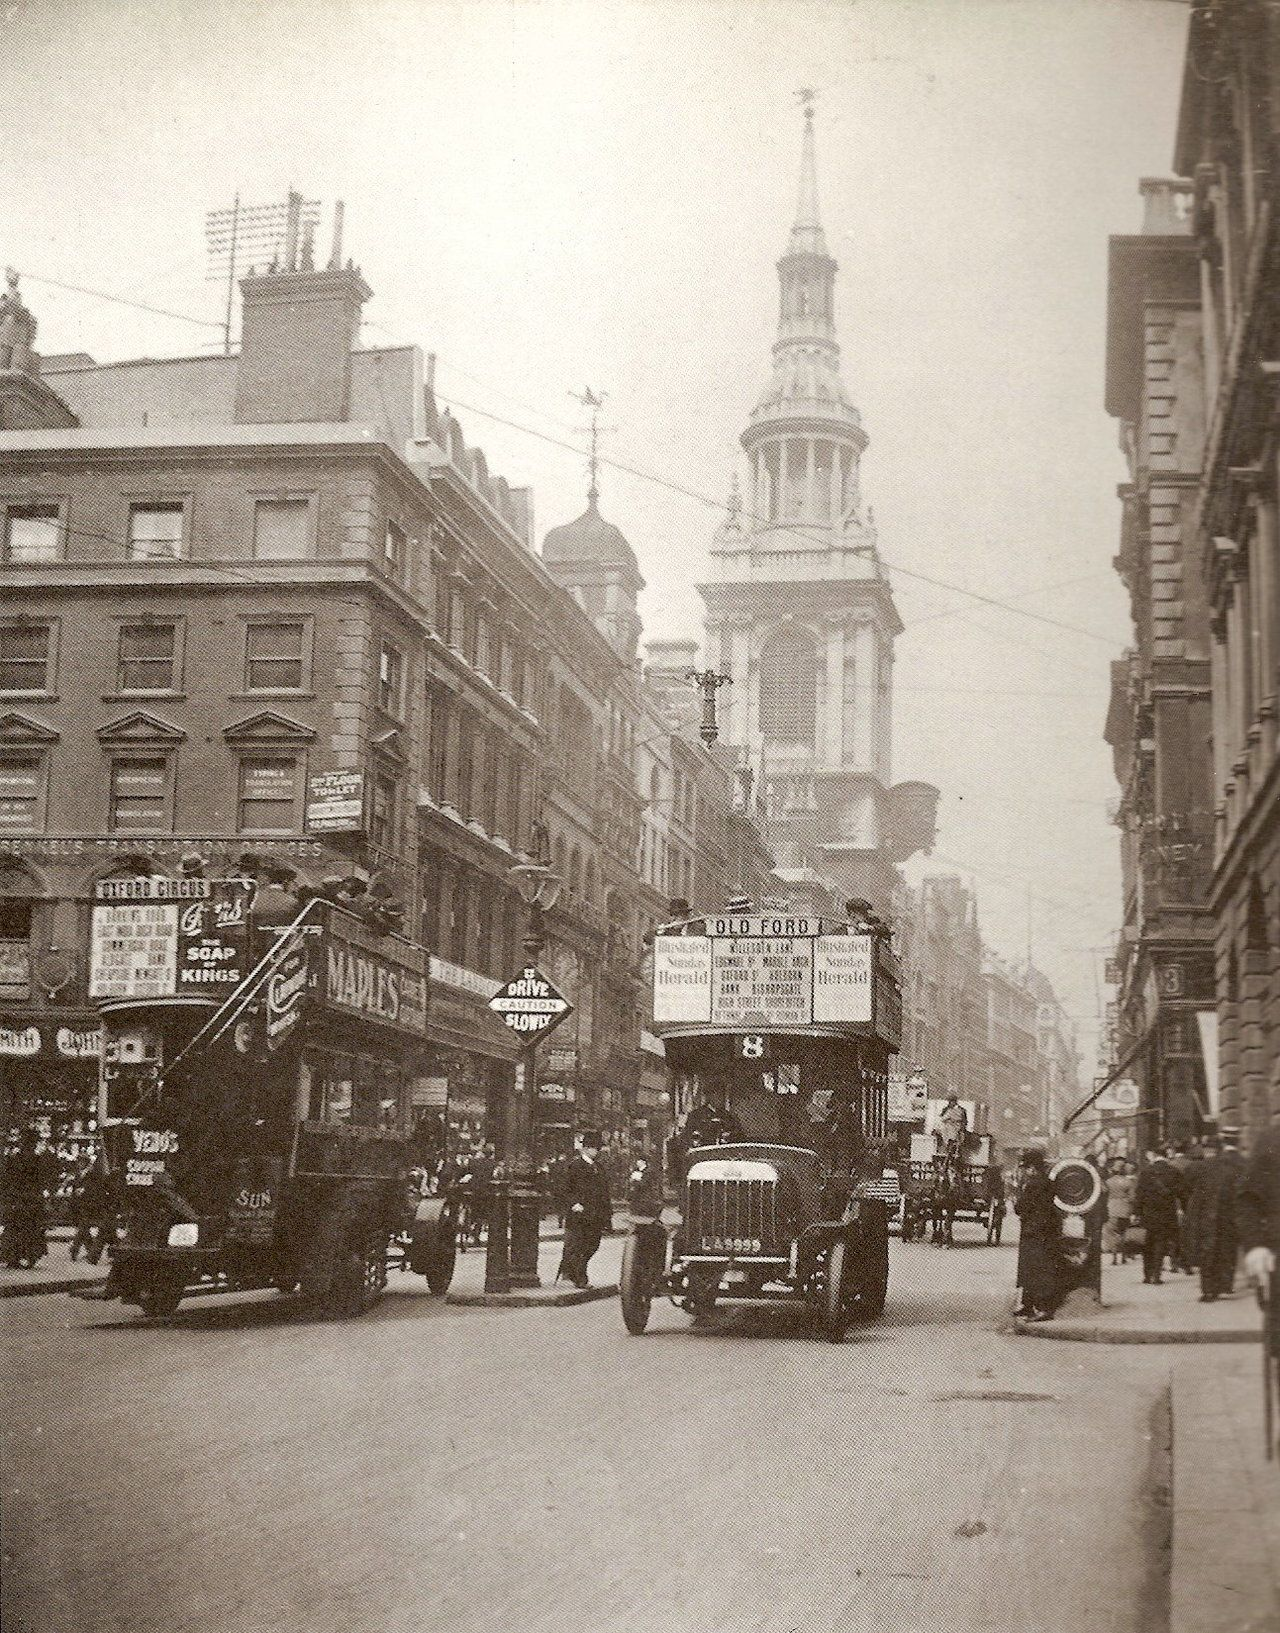 Cheapside, City of London, 1909. Where the literary figure Jackie Faber was born